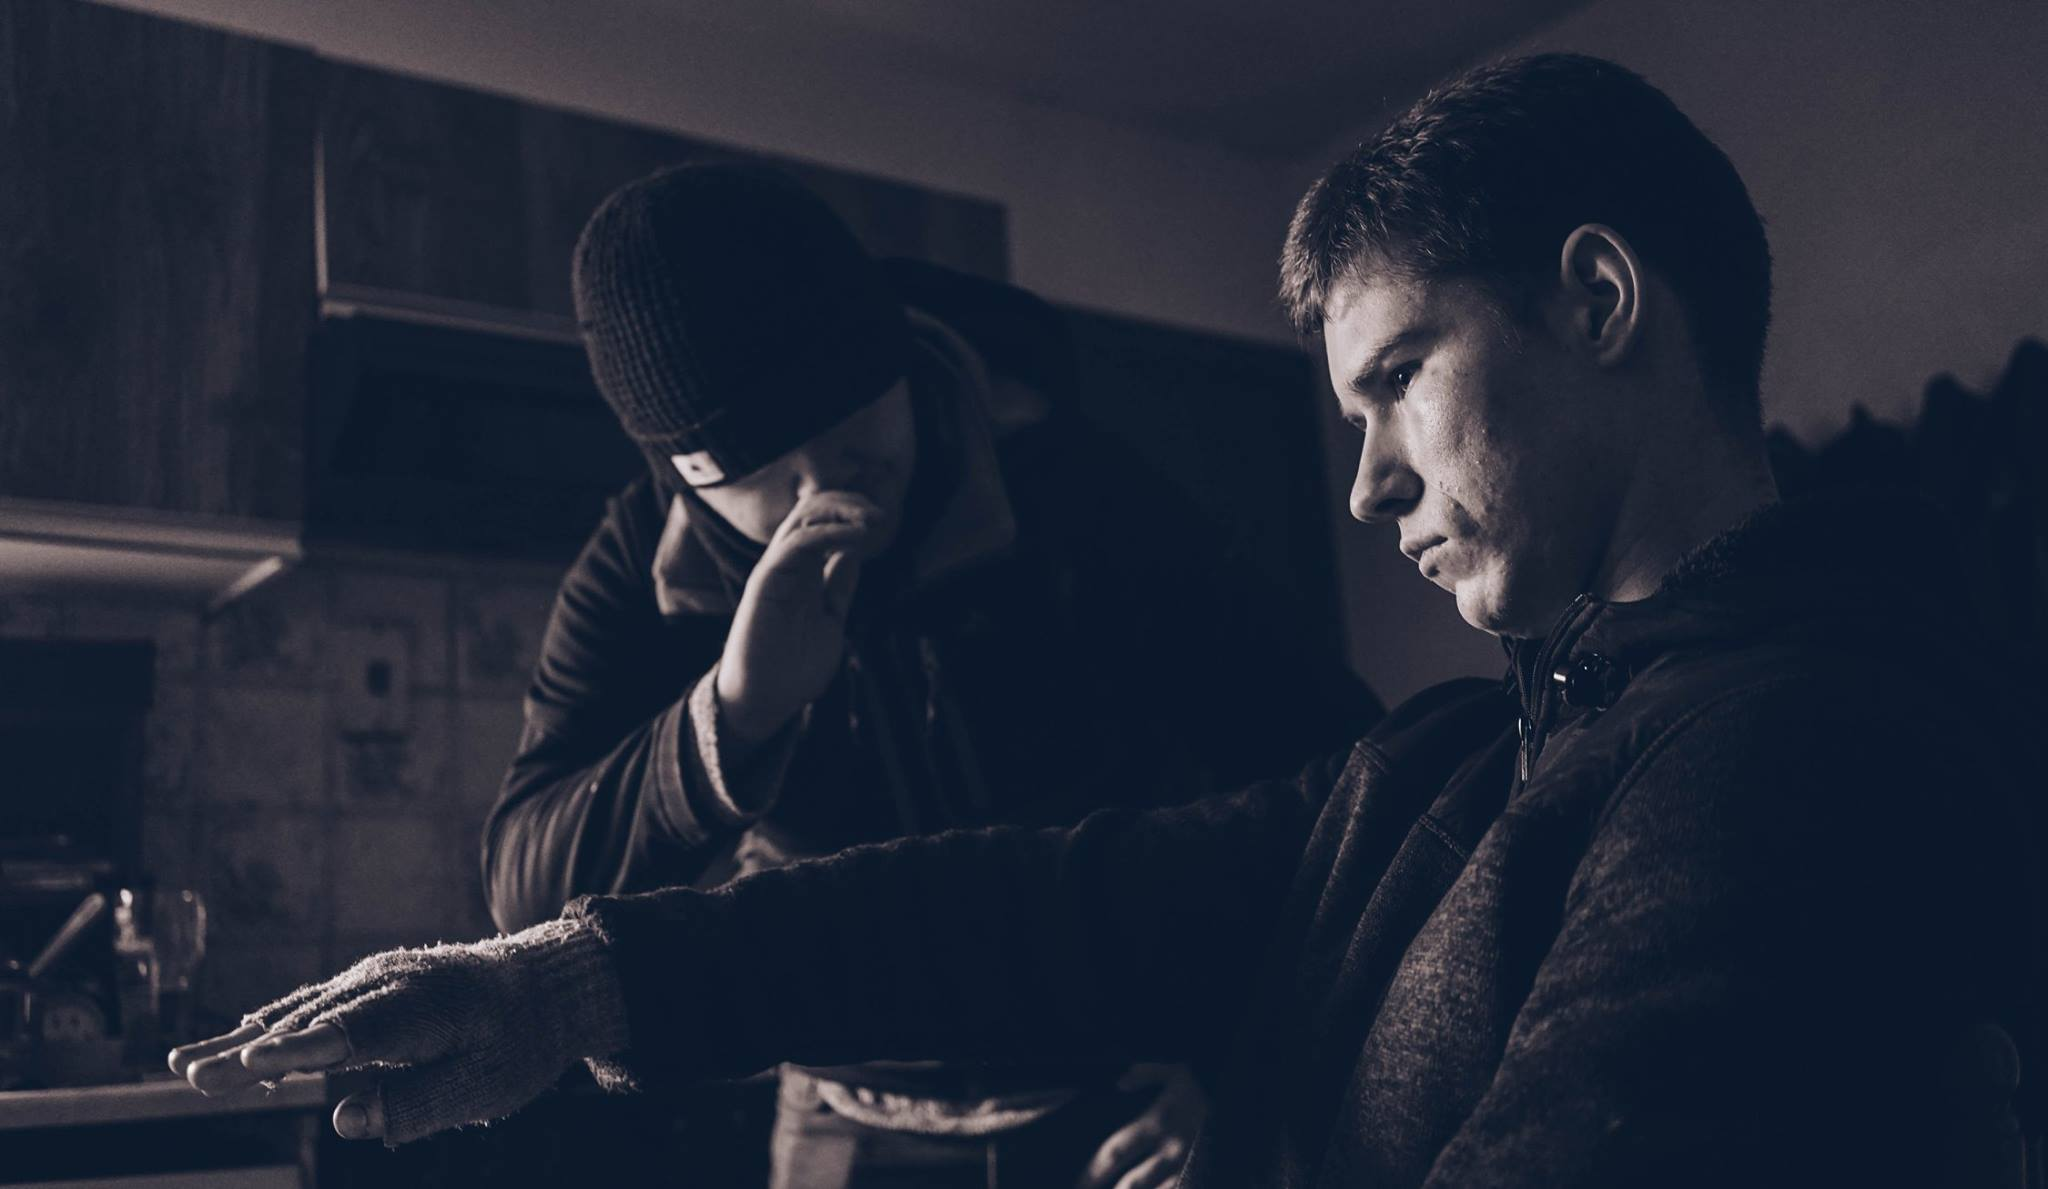 Brendan McCallion and actor Patrick Loftus (Tommy) on the set of Backwater. Photo by Cormac Campbell.